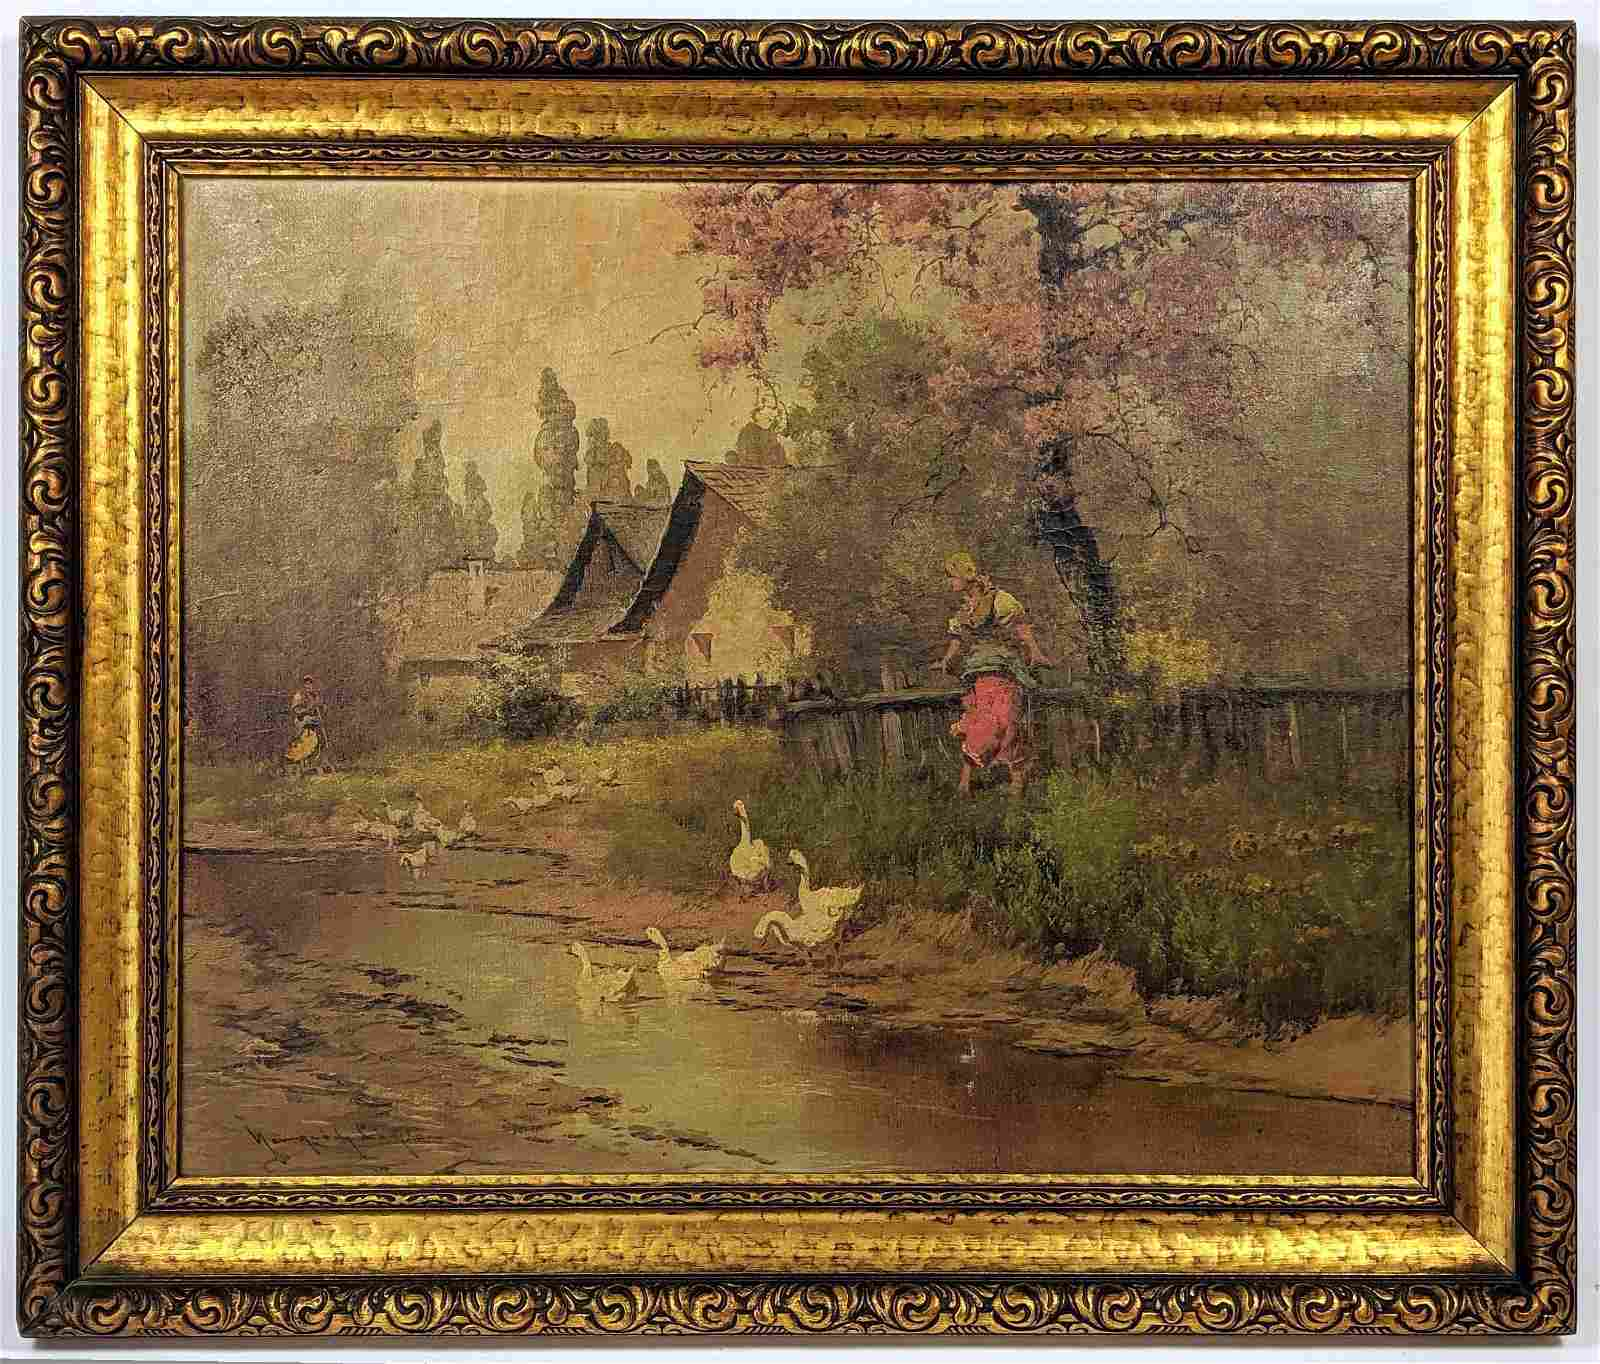 Neogrady Laszlo Painting on canvas of woman with ducks.